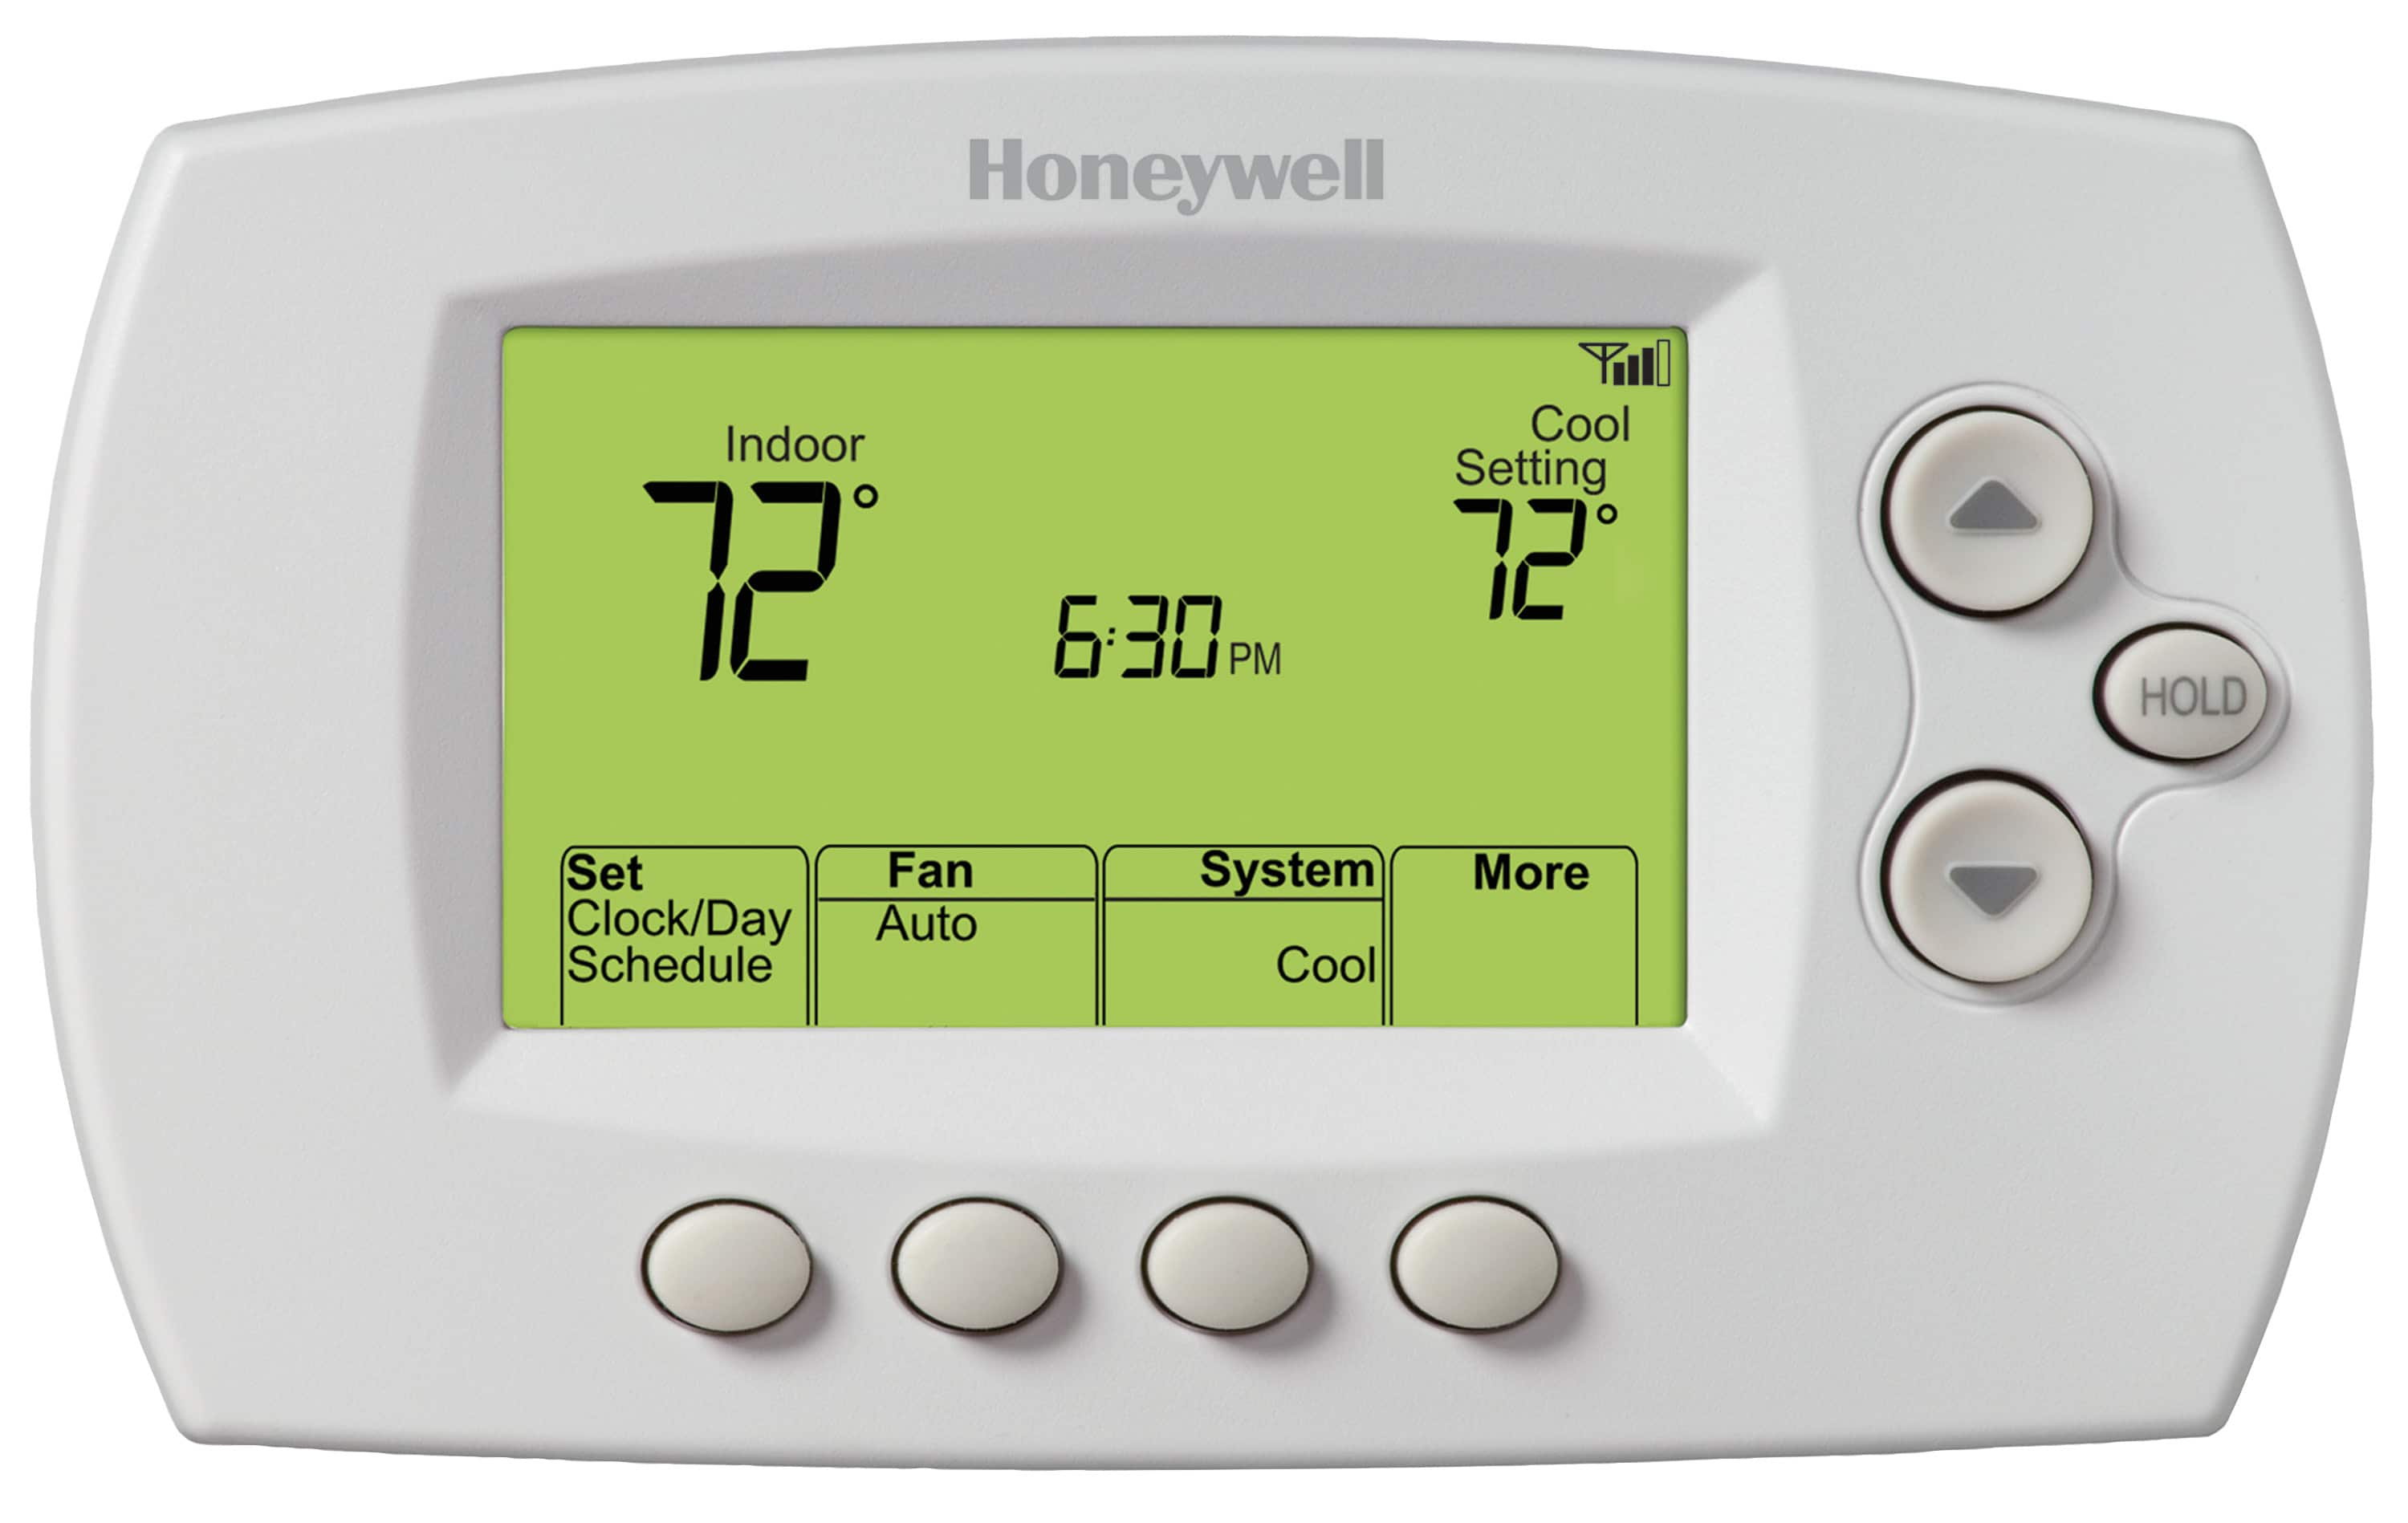 Honeywell Thermostats Wiring Basic Guide Diagram Most Thermostat Failures Are Not Disasters R Poust Inc 9580